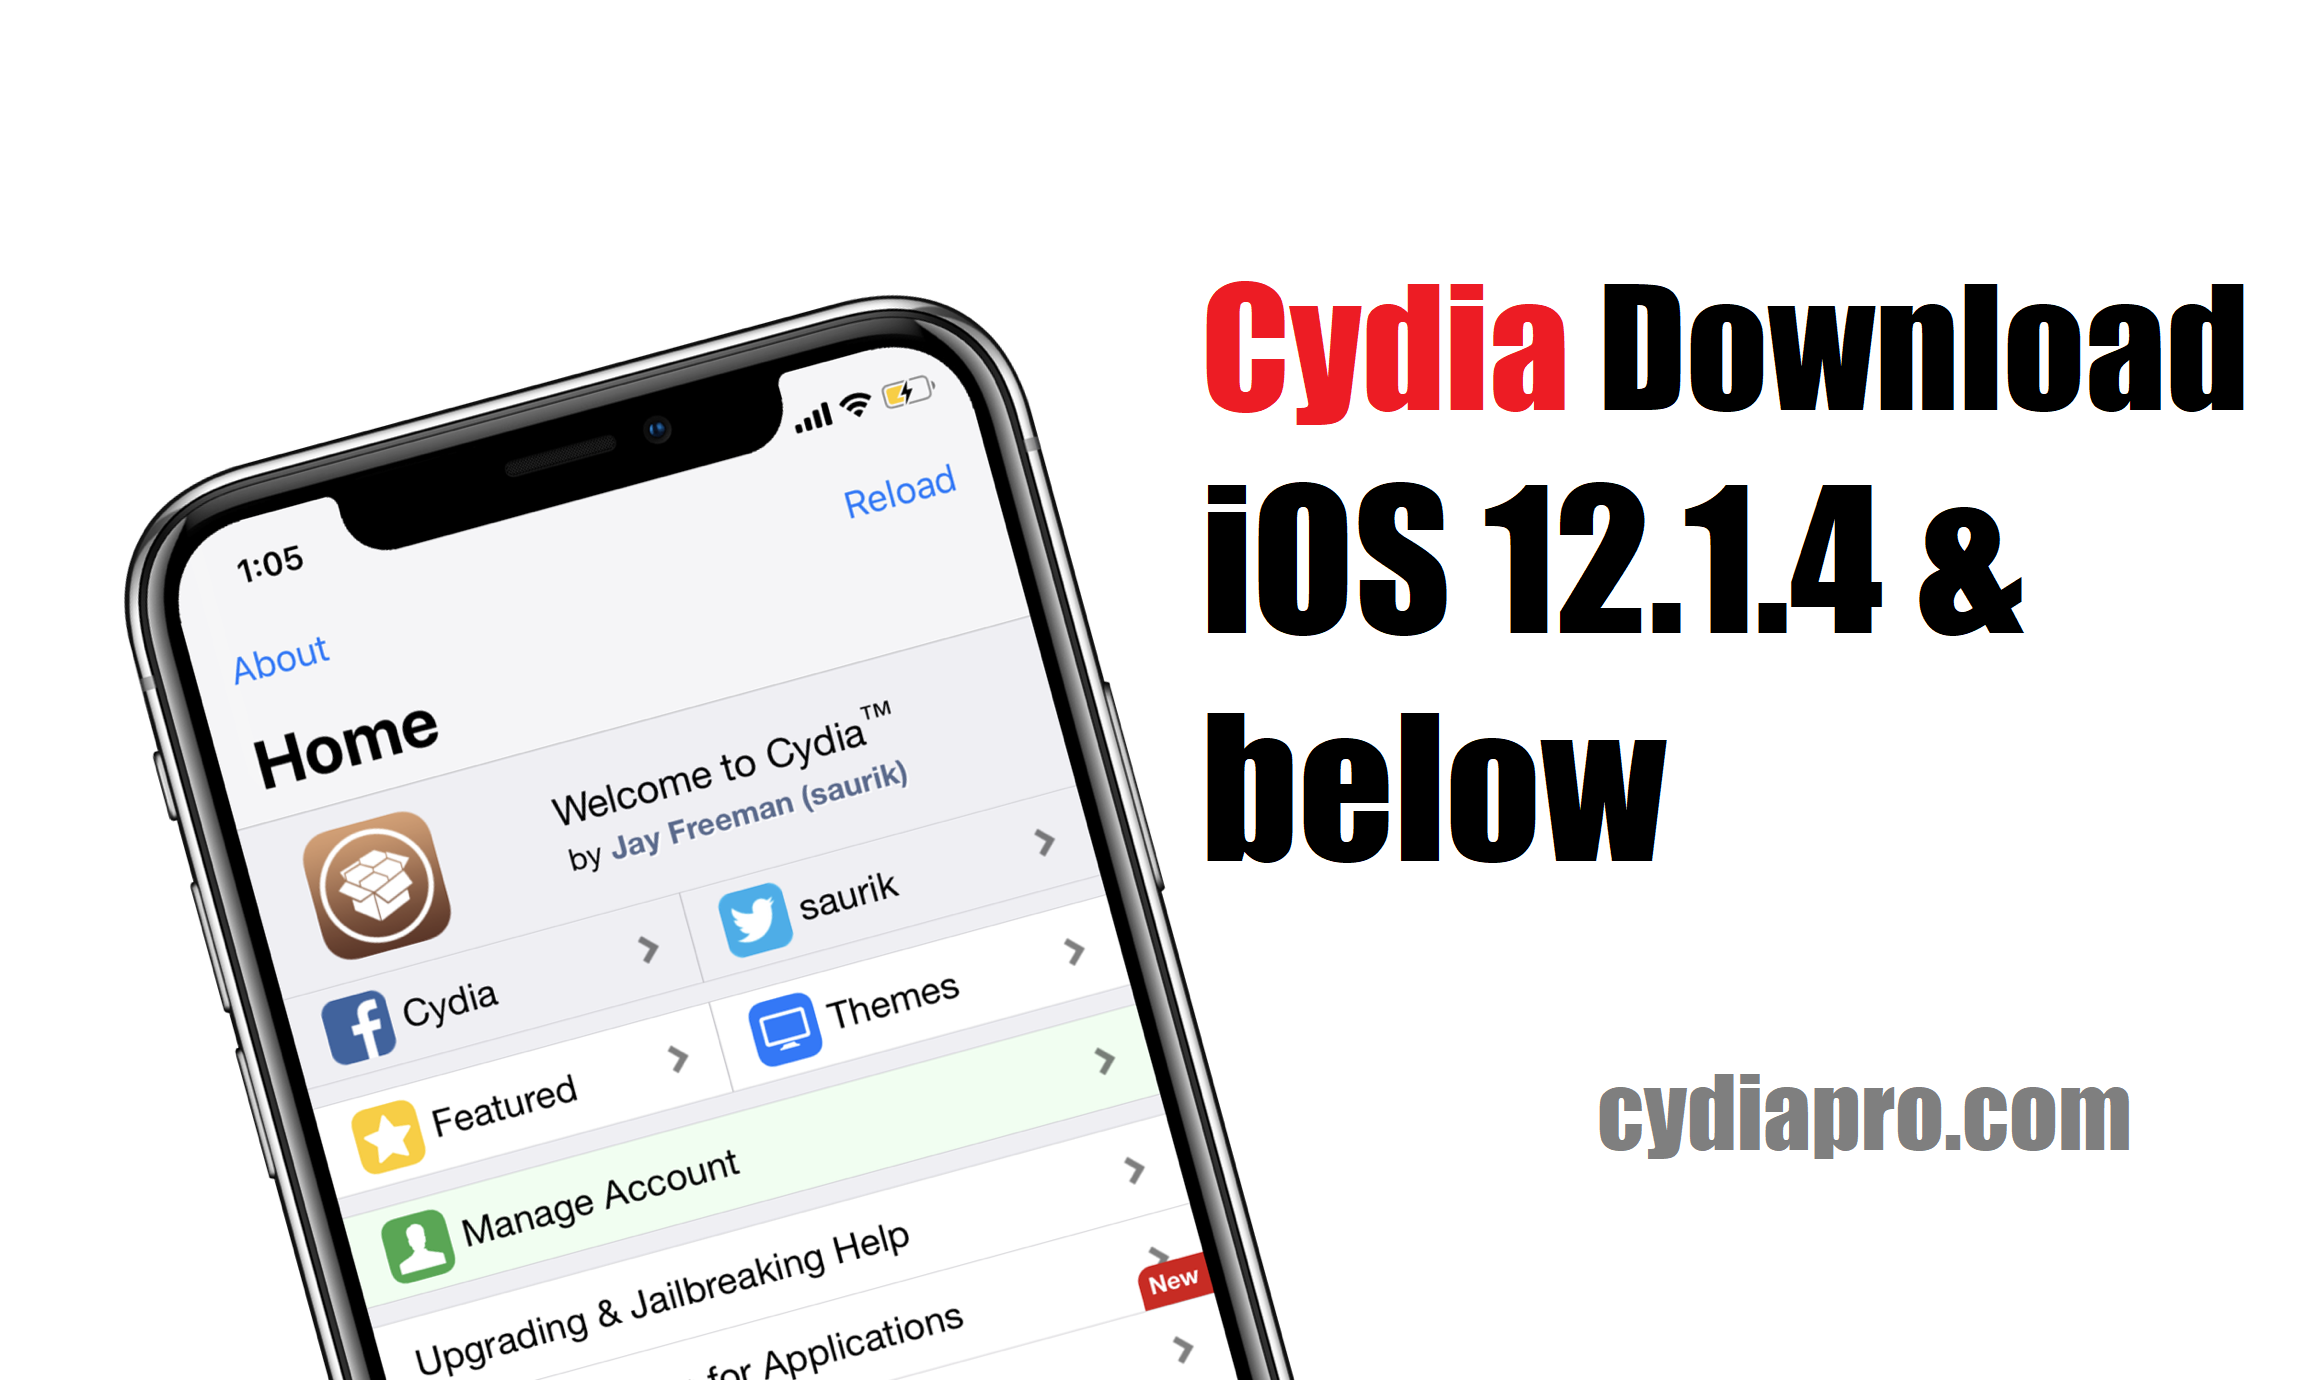 Download Cydia iOS 12.1.4 using iOS 12 semi jailbreak tool